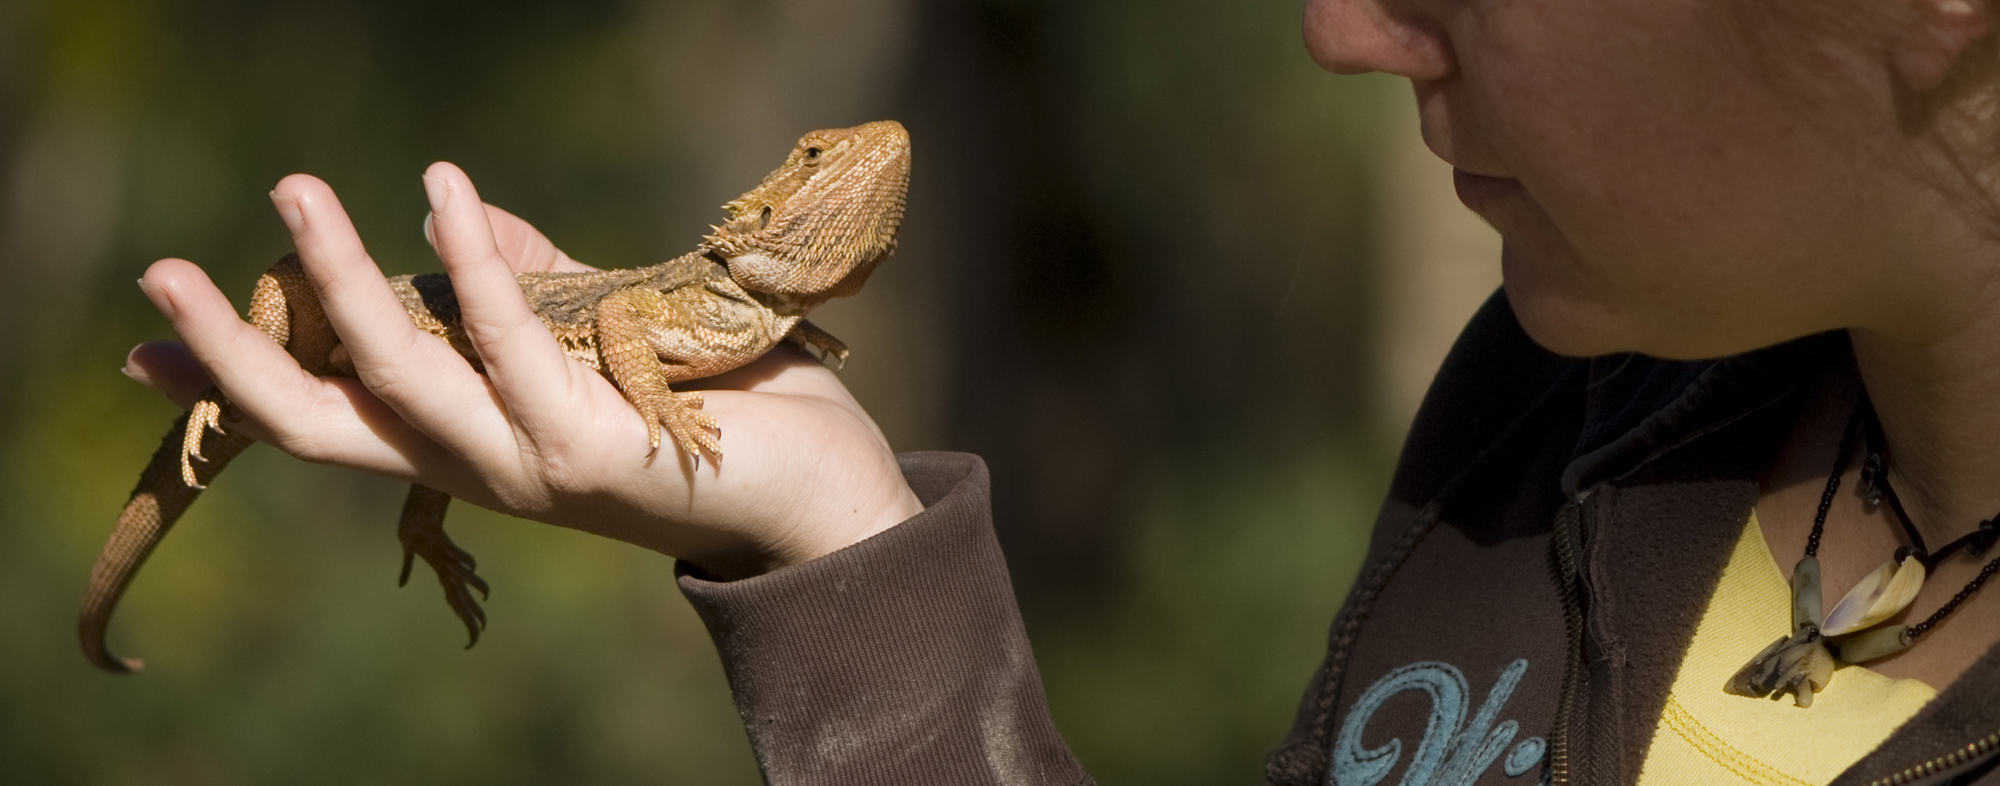 A pet reptile that fits in your hand will be easy to handle